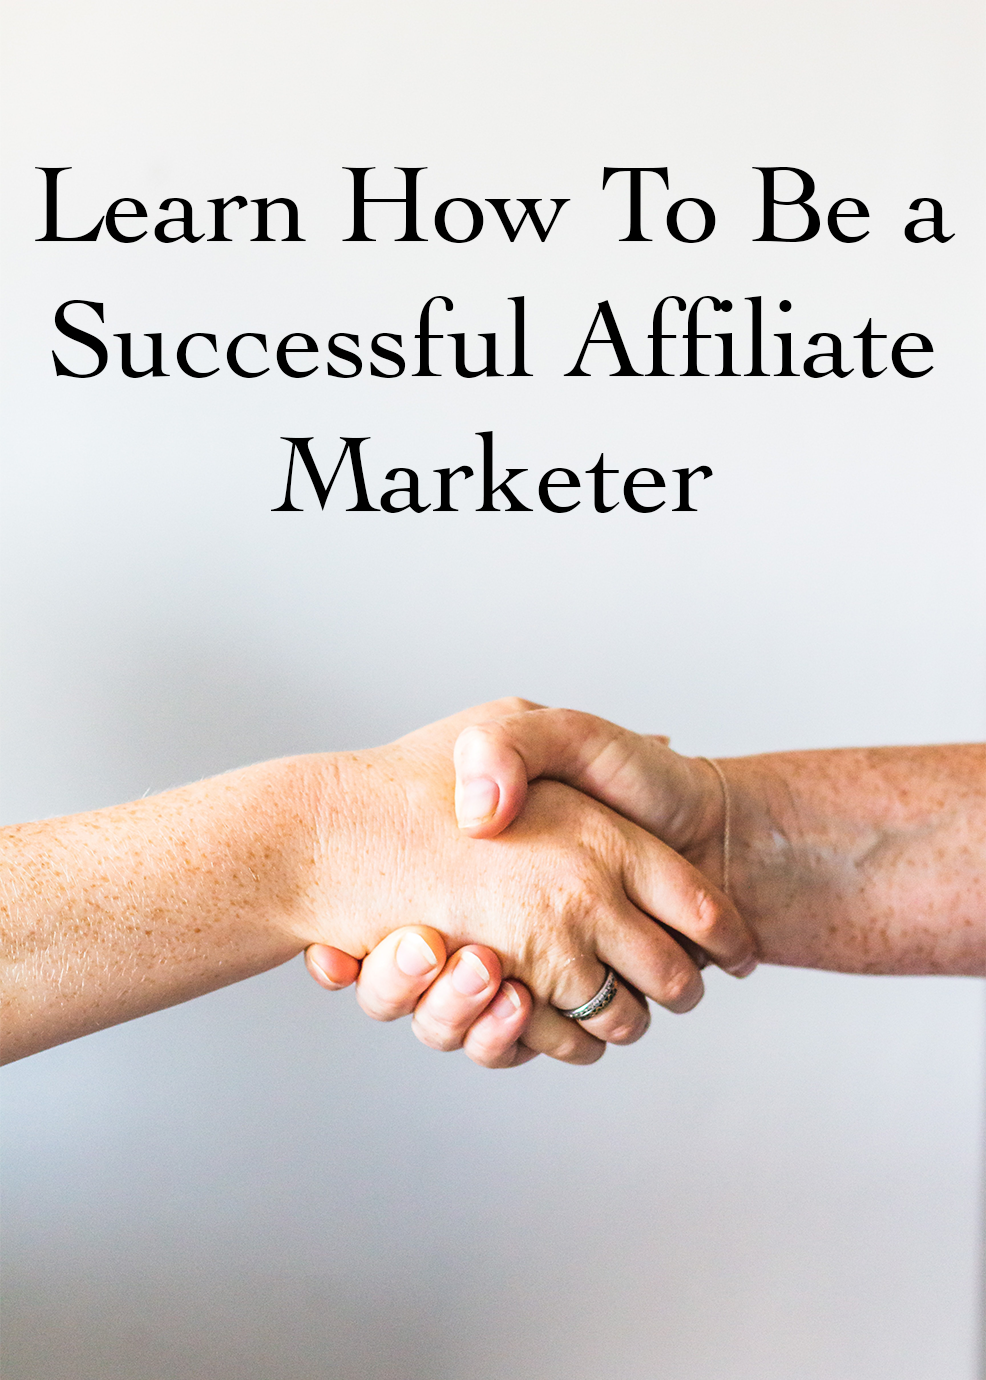 Learn How To Be a Successful Affiliate Marketer